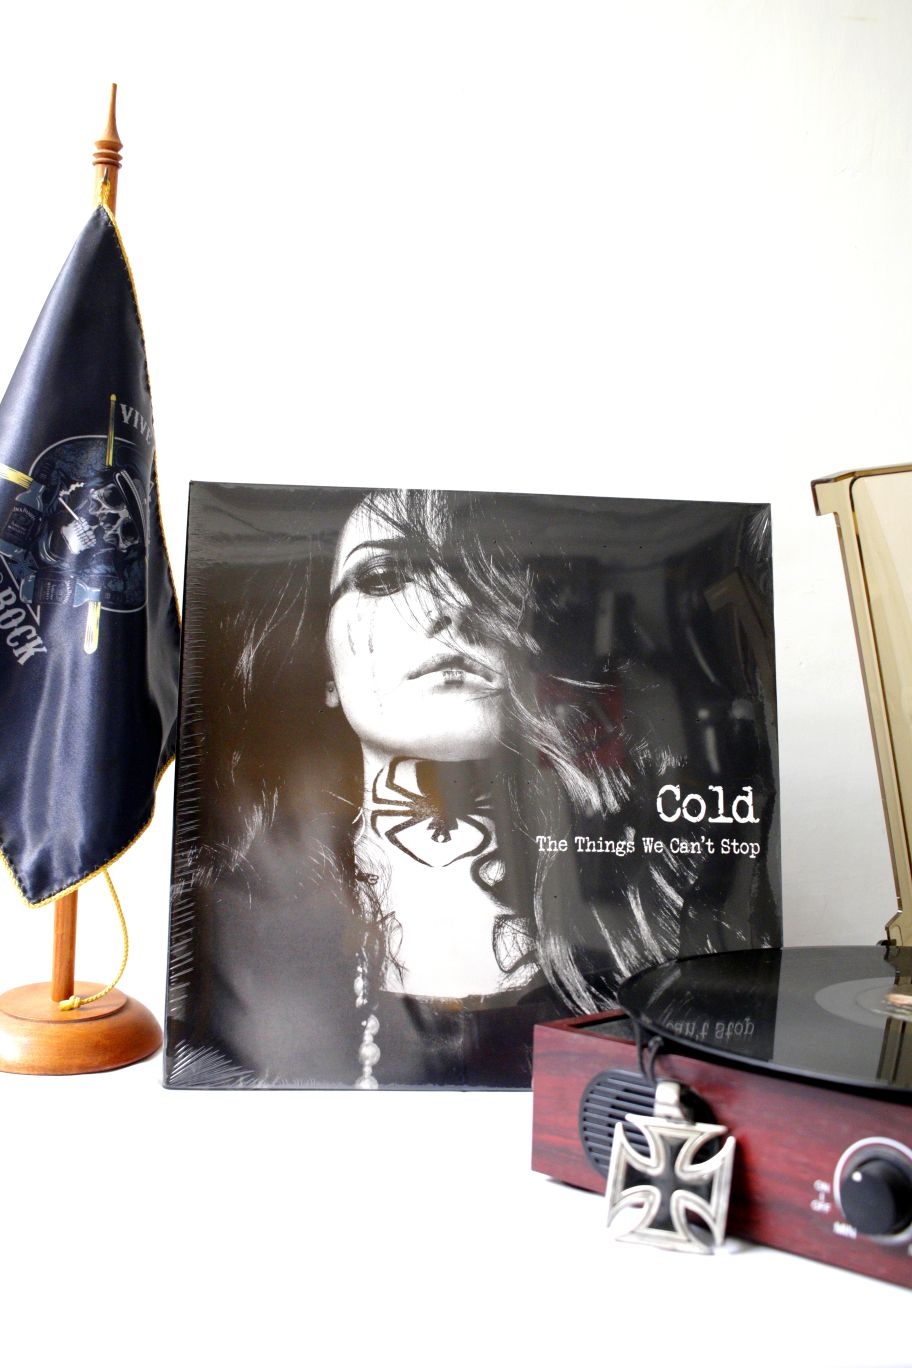 VINILO COLD THE THING WHE CAN'T STOP